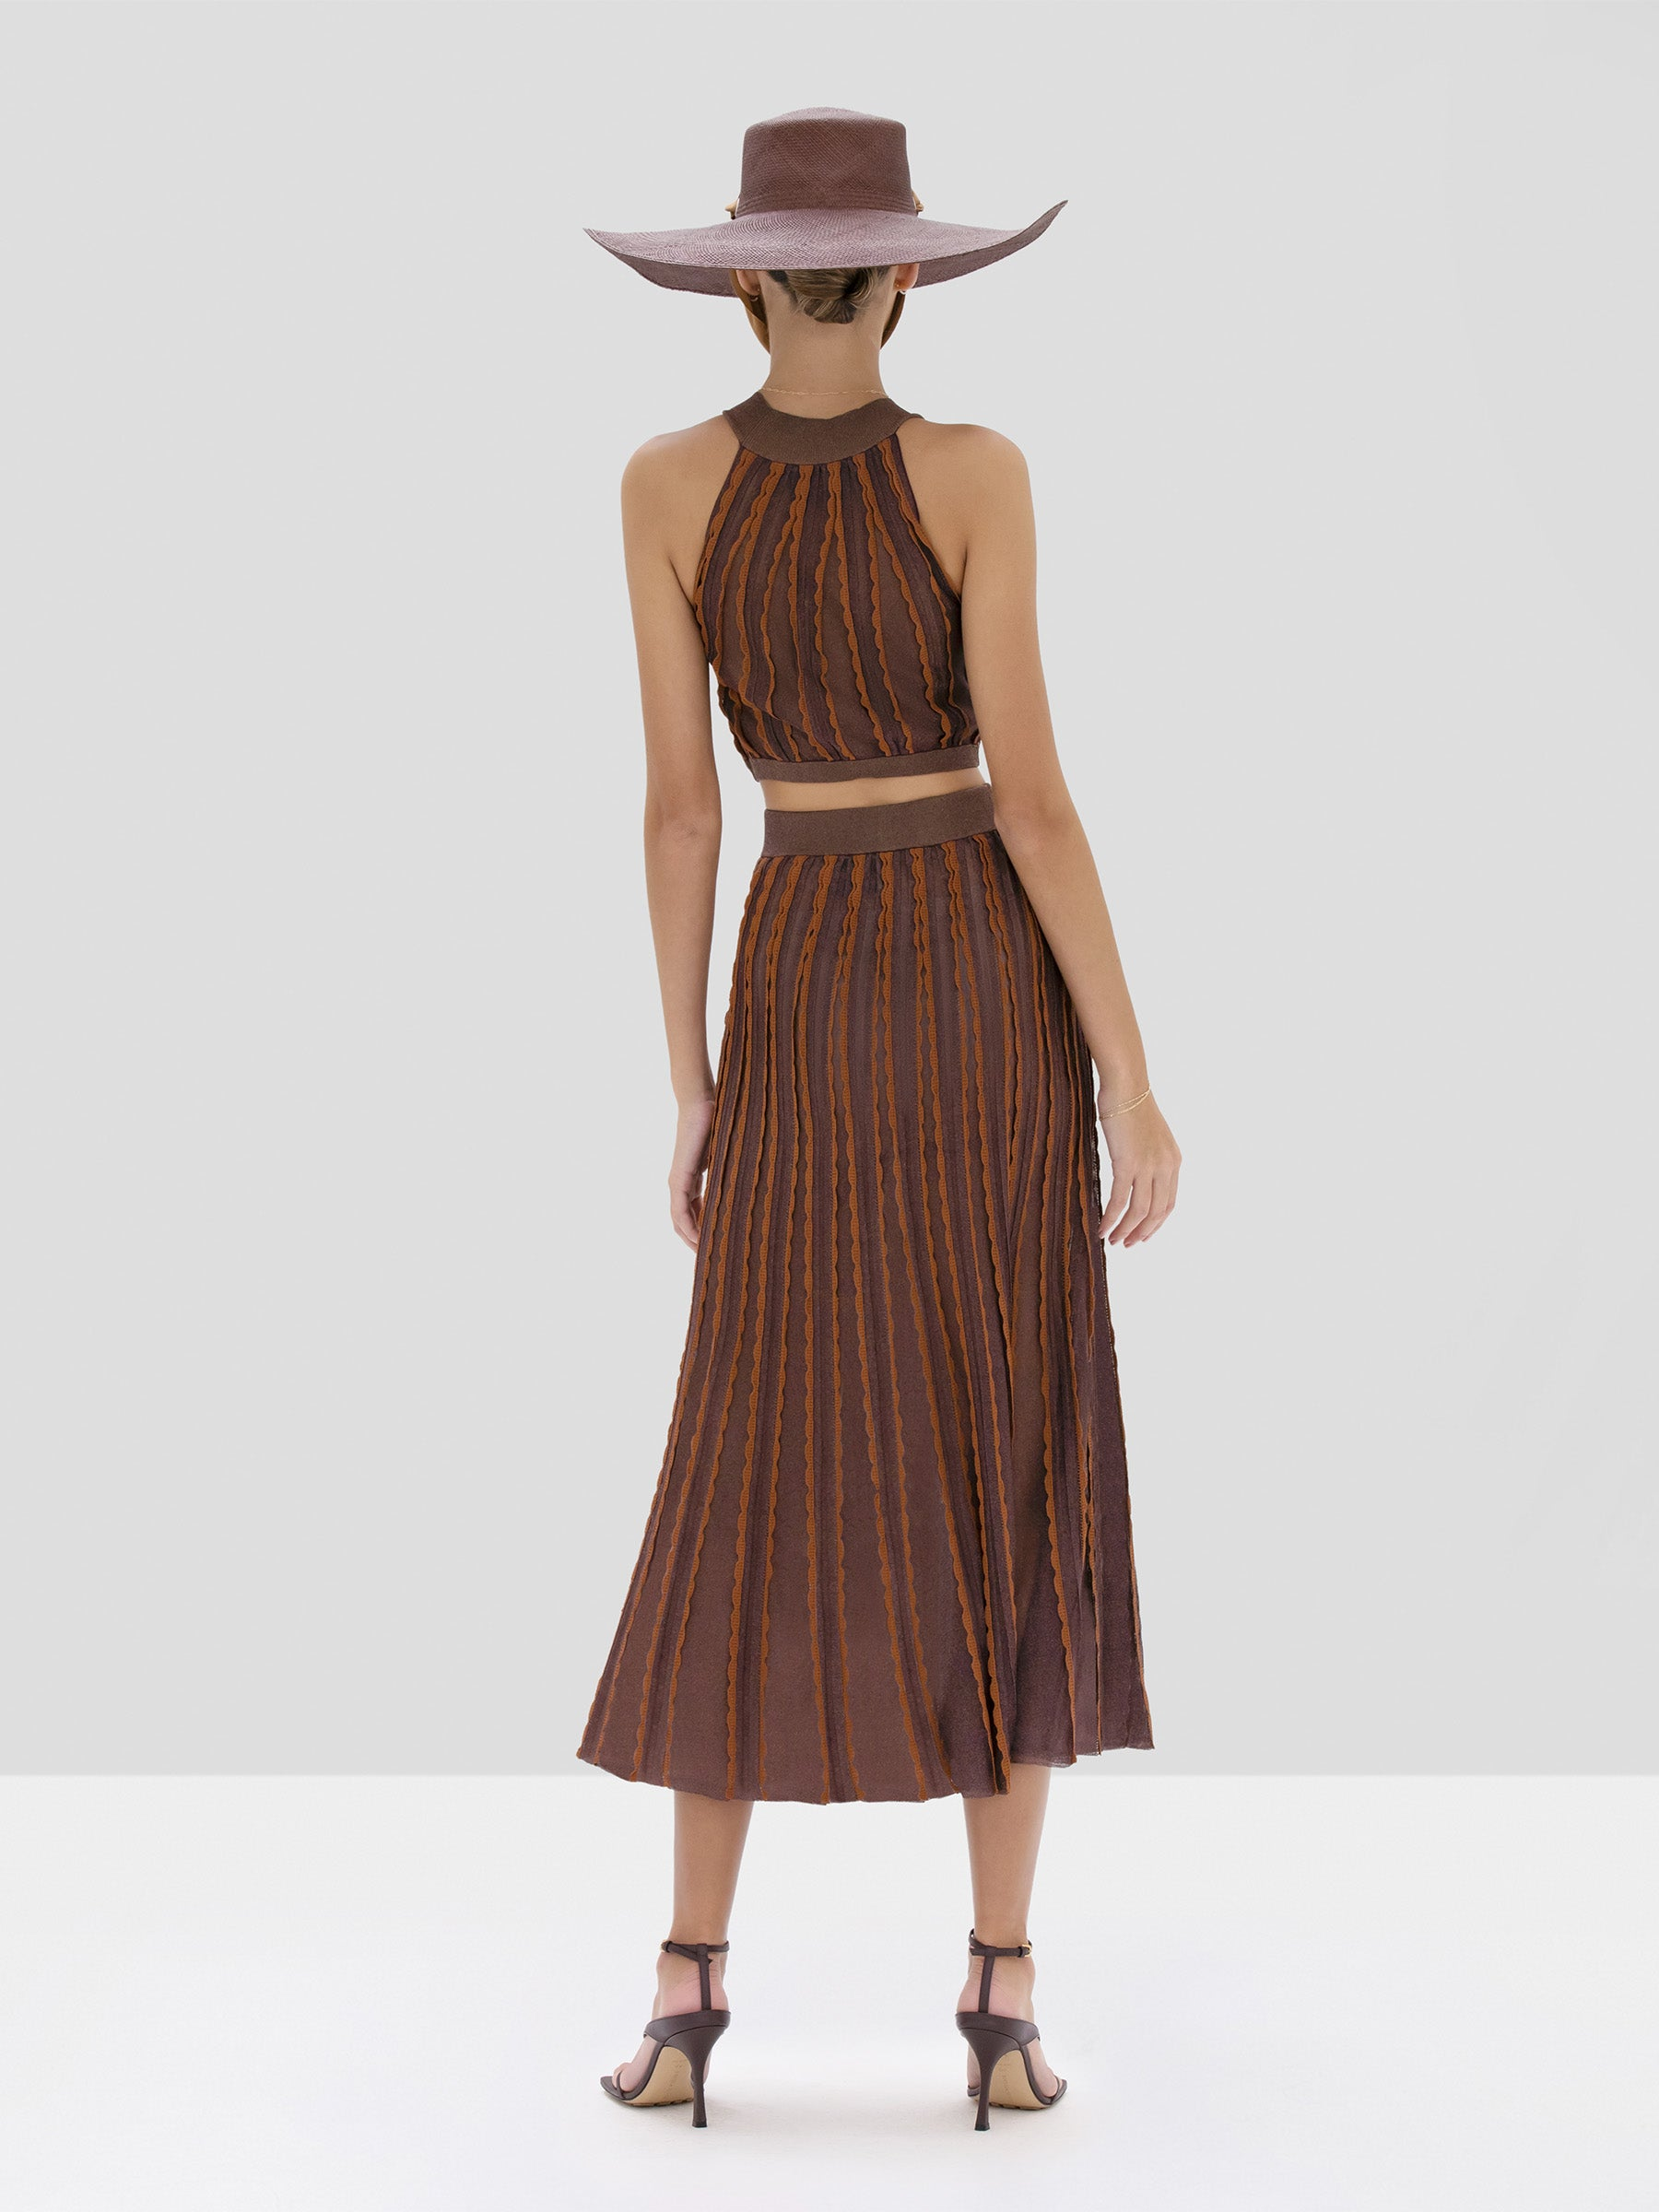 Alexis Keva Top and Zea Skirt in Mocha from Spring Summer 2020 Collection  - Rear View